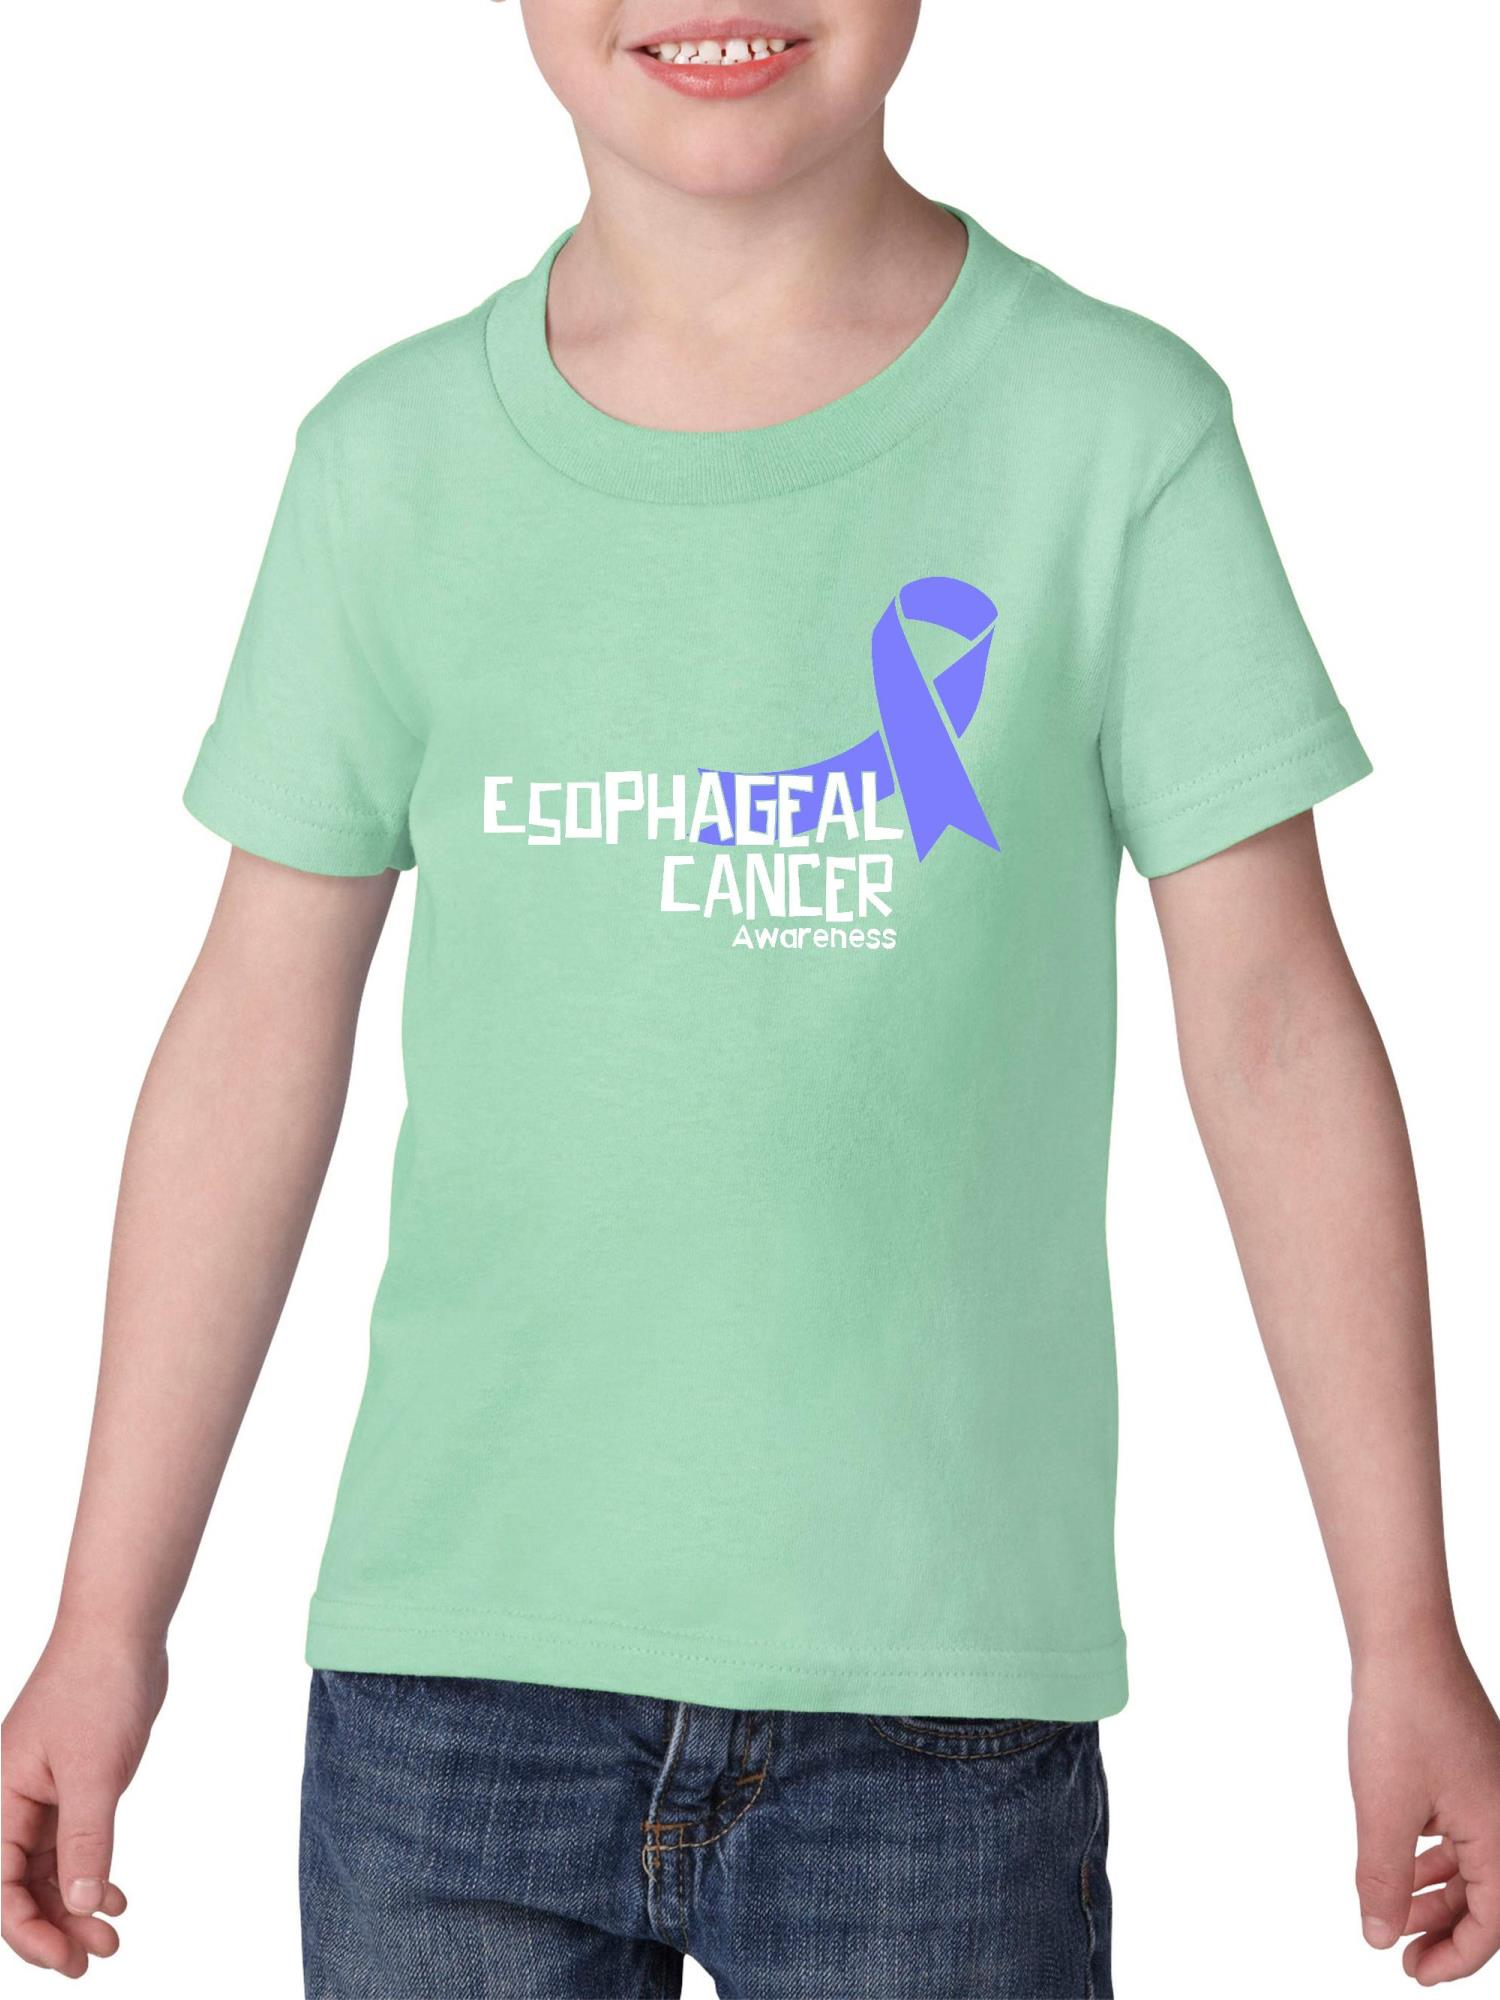 Esophageal Cancer Awareness Heavy Cotton Toddler Kids T-Shirt Tee Clothing